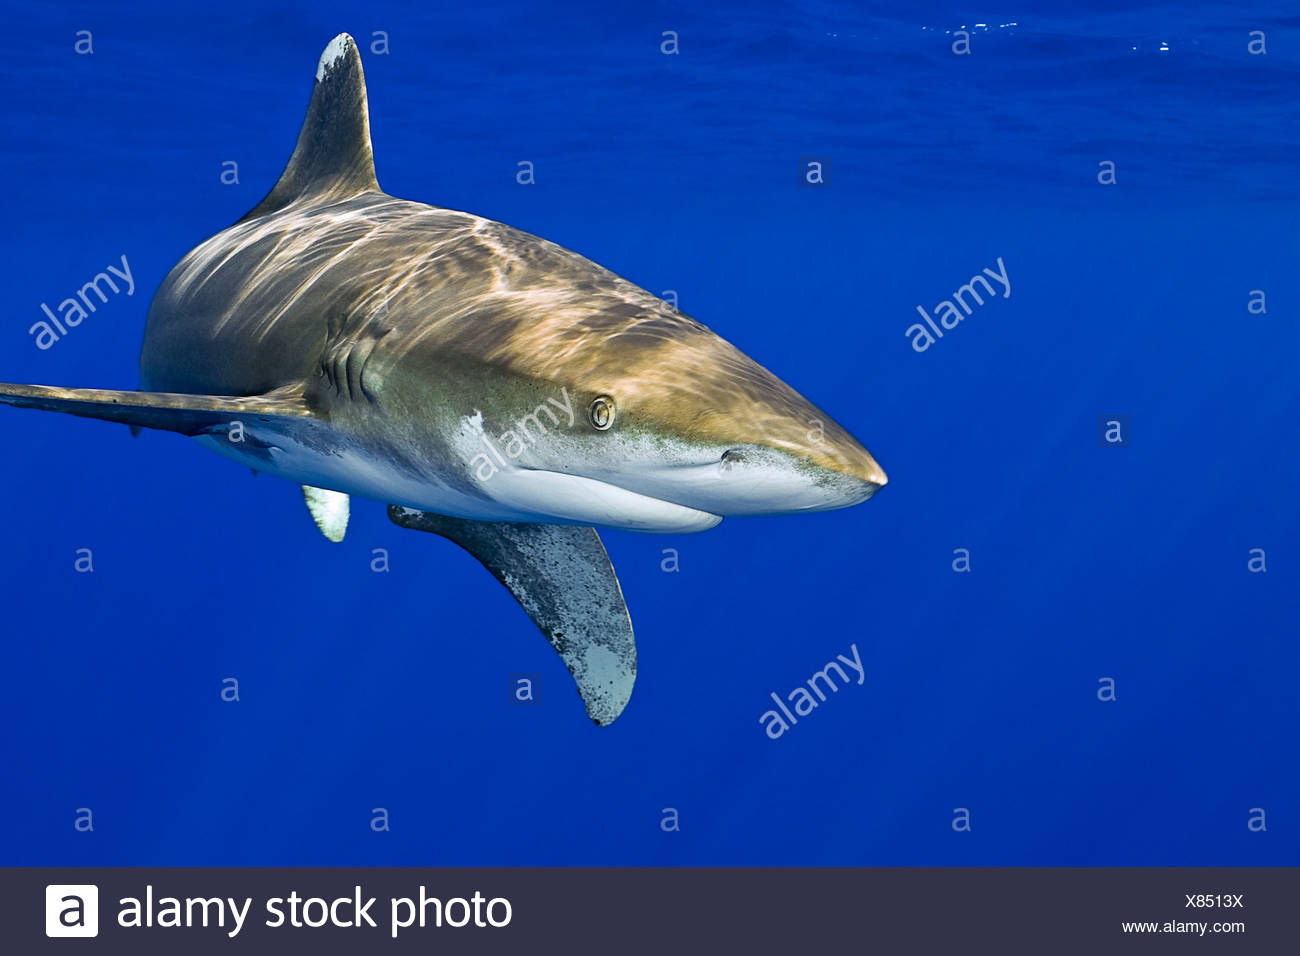 Oceanic Whitetip Shark, Carcharhinus longimanus, Kona Coast, Big Island, Hawaii, USA Stock Photo